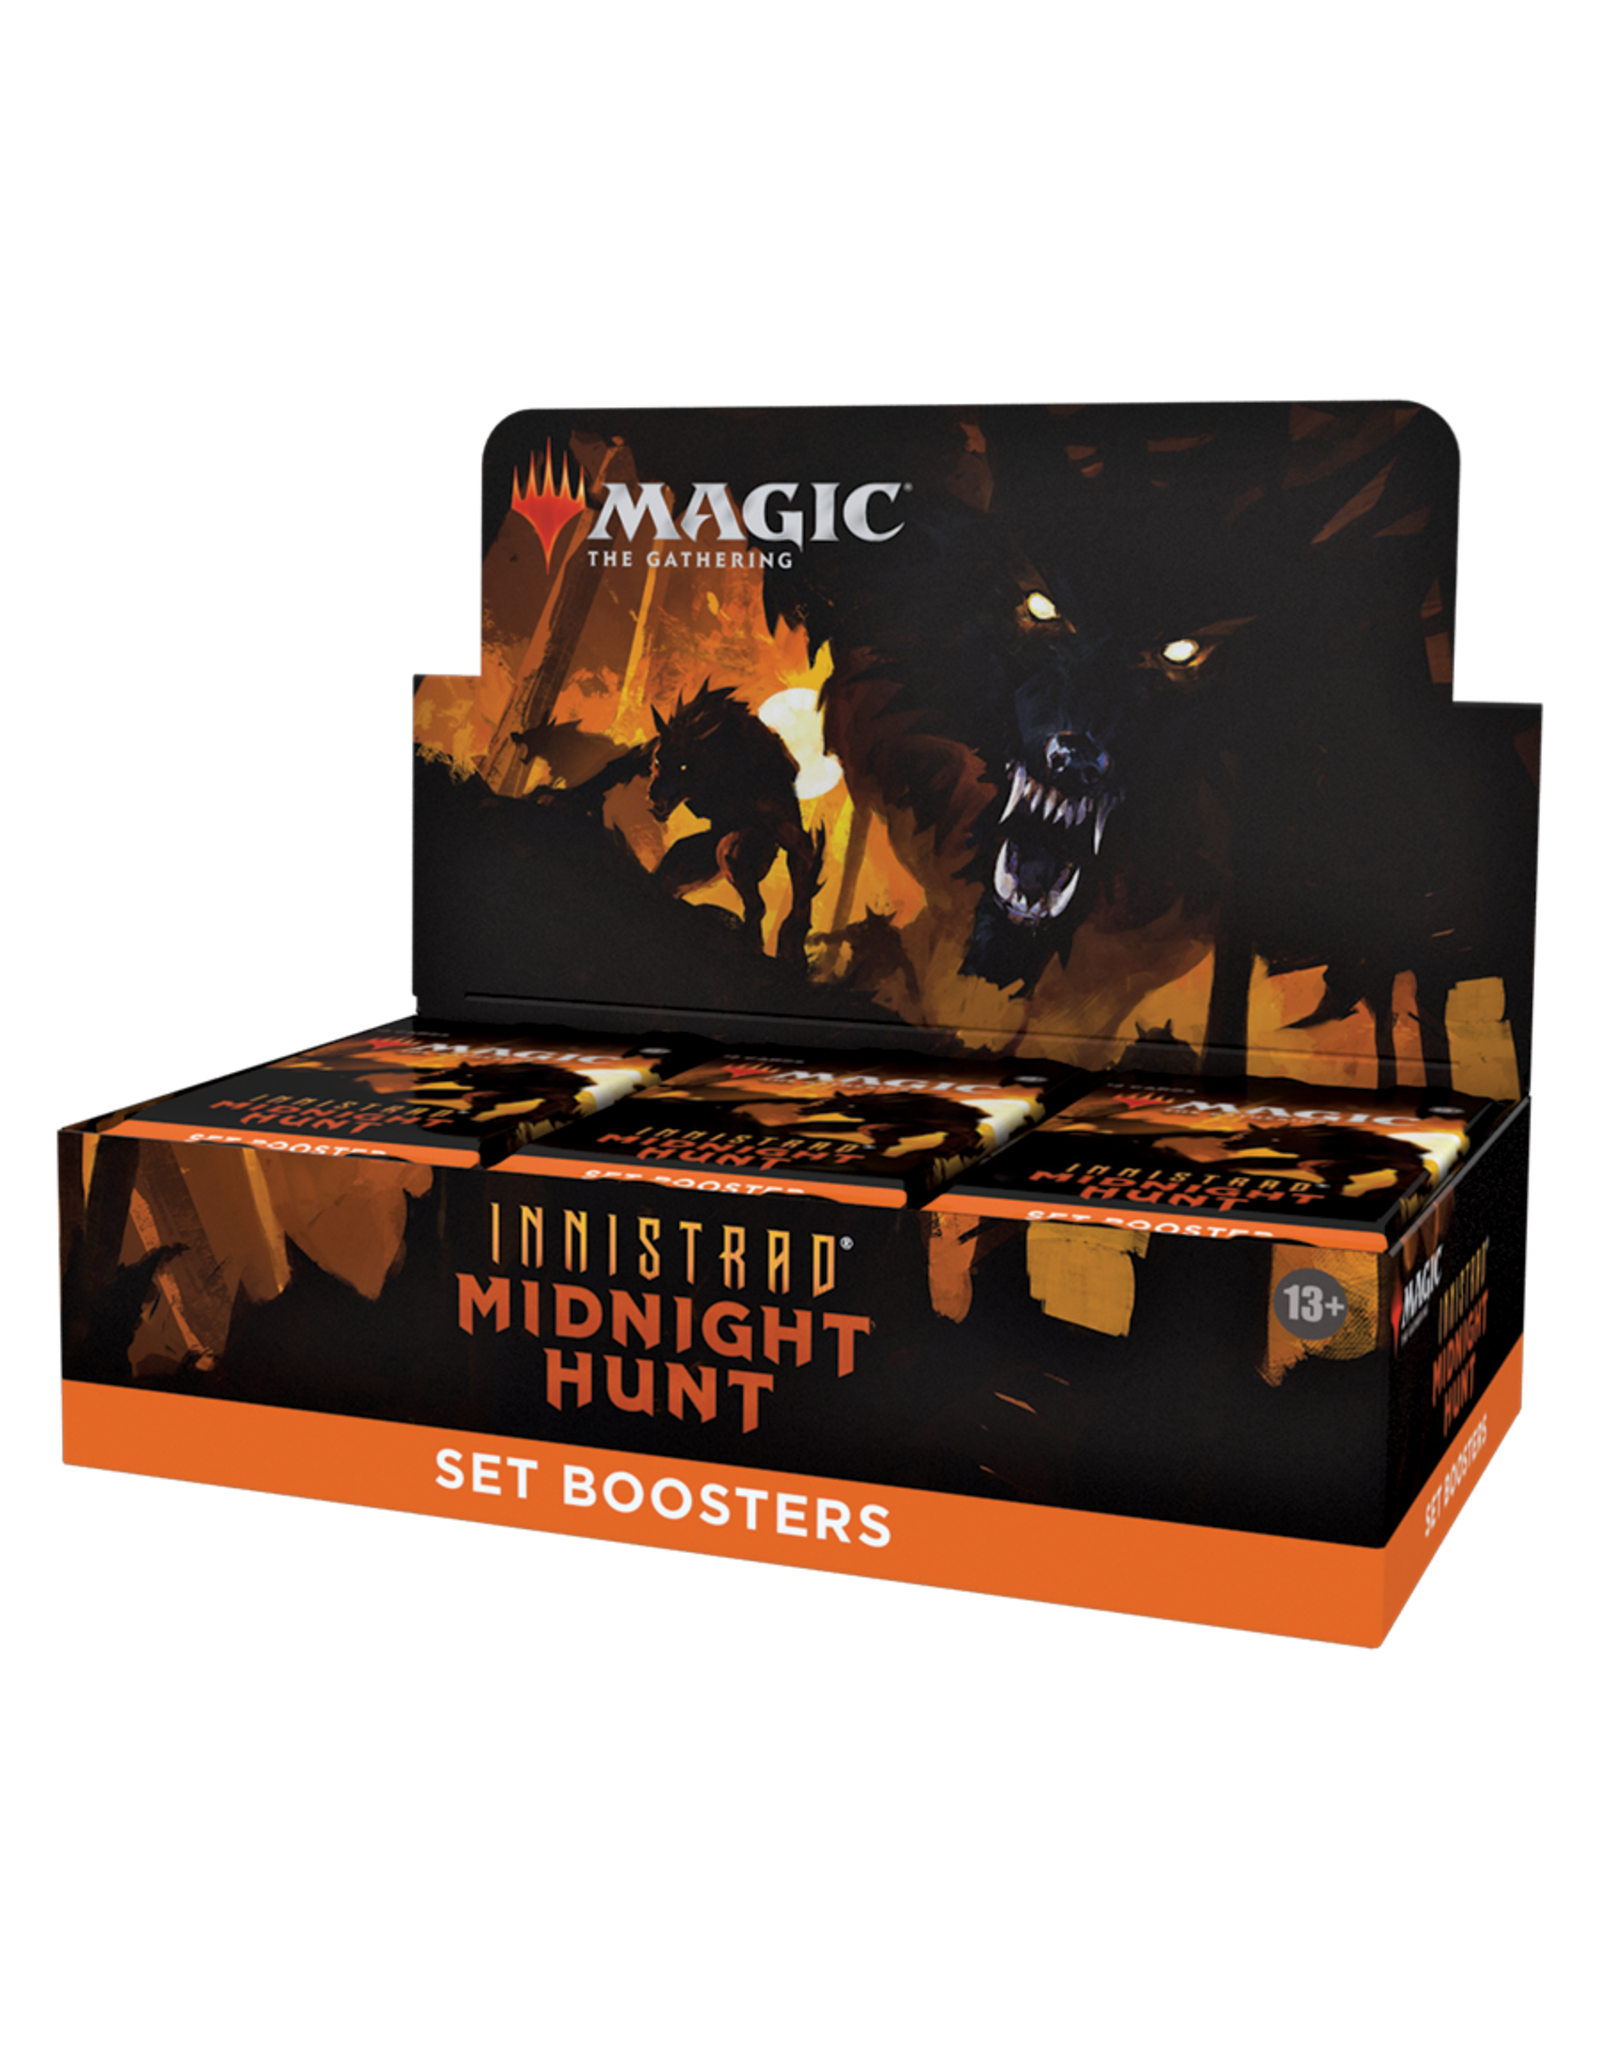 WIZARDS OF THE COAST MAGIC THE GATHERING INNISTRAD MIDNIGHT HUNT SET BOOSTER BOX